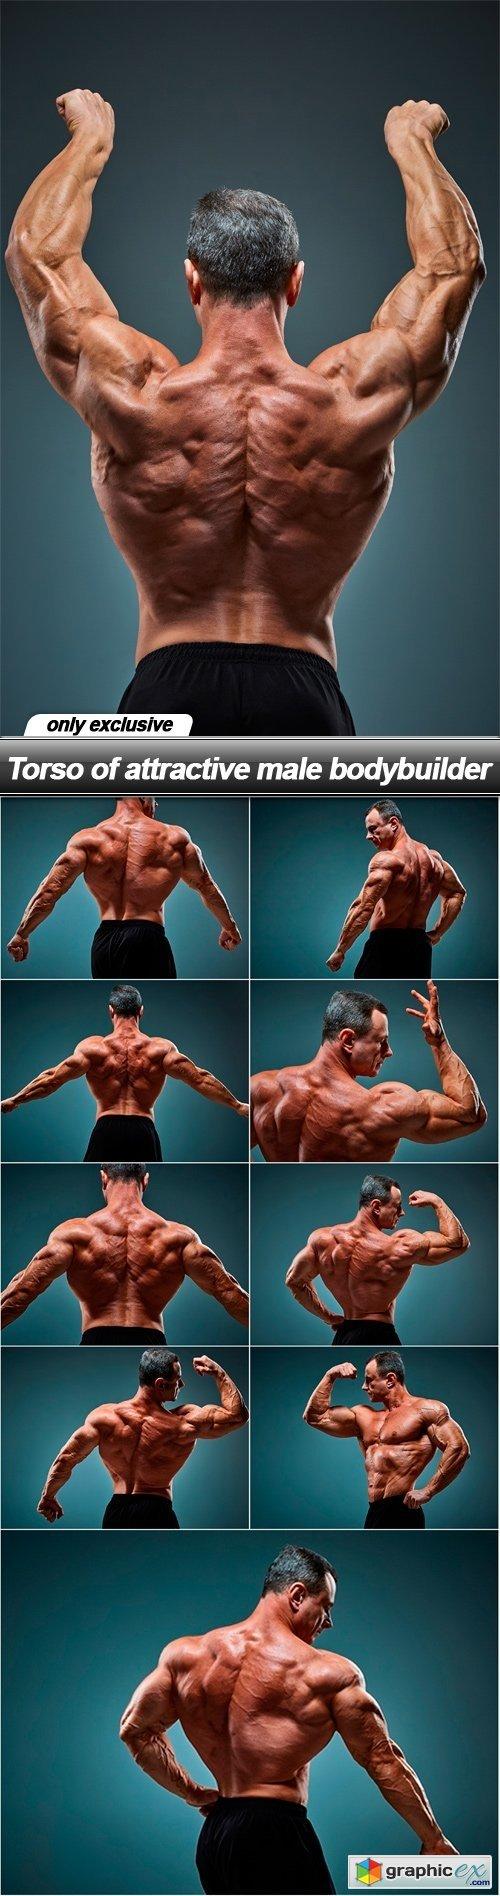 Torso of attractive male bodybuilder - 10 UHQ JPEG